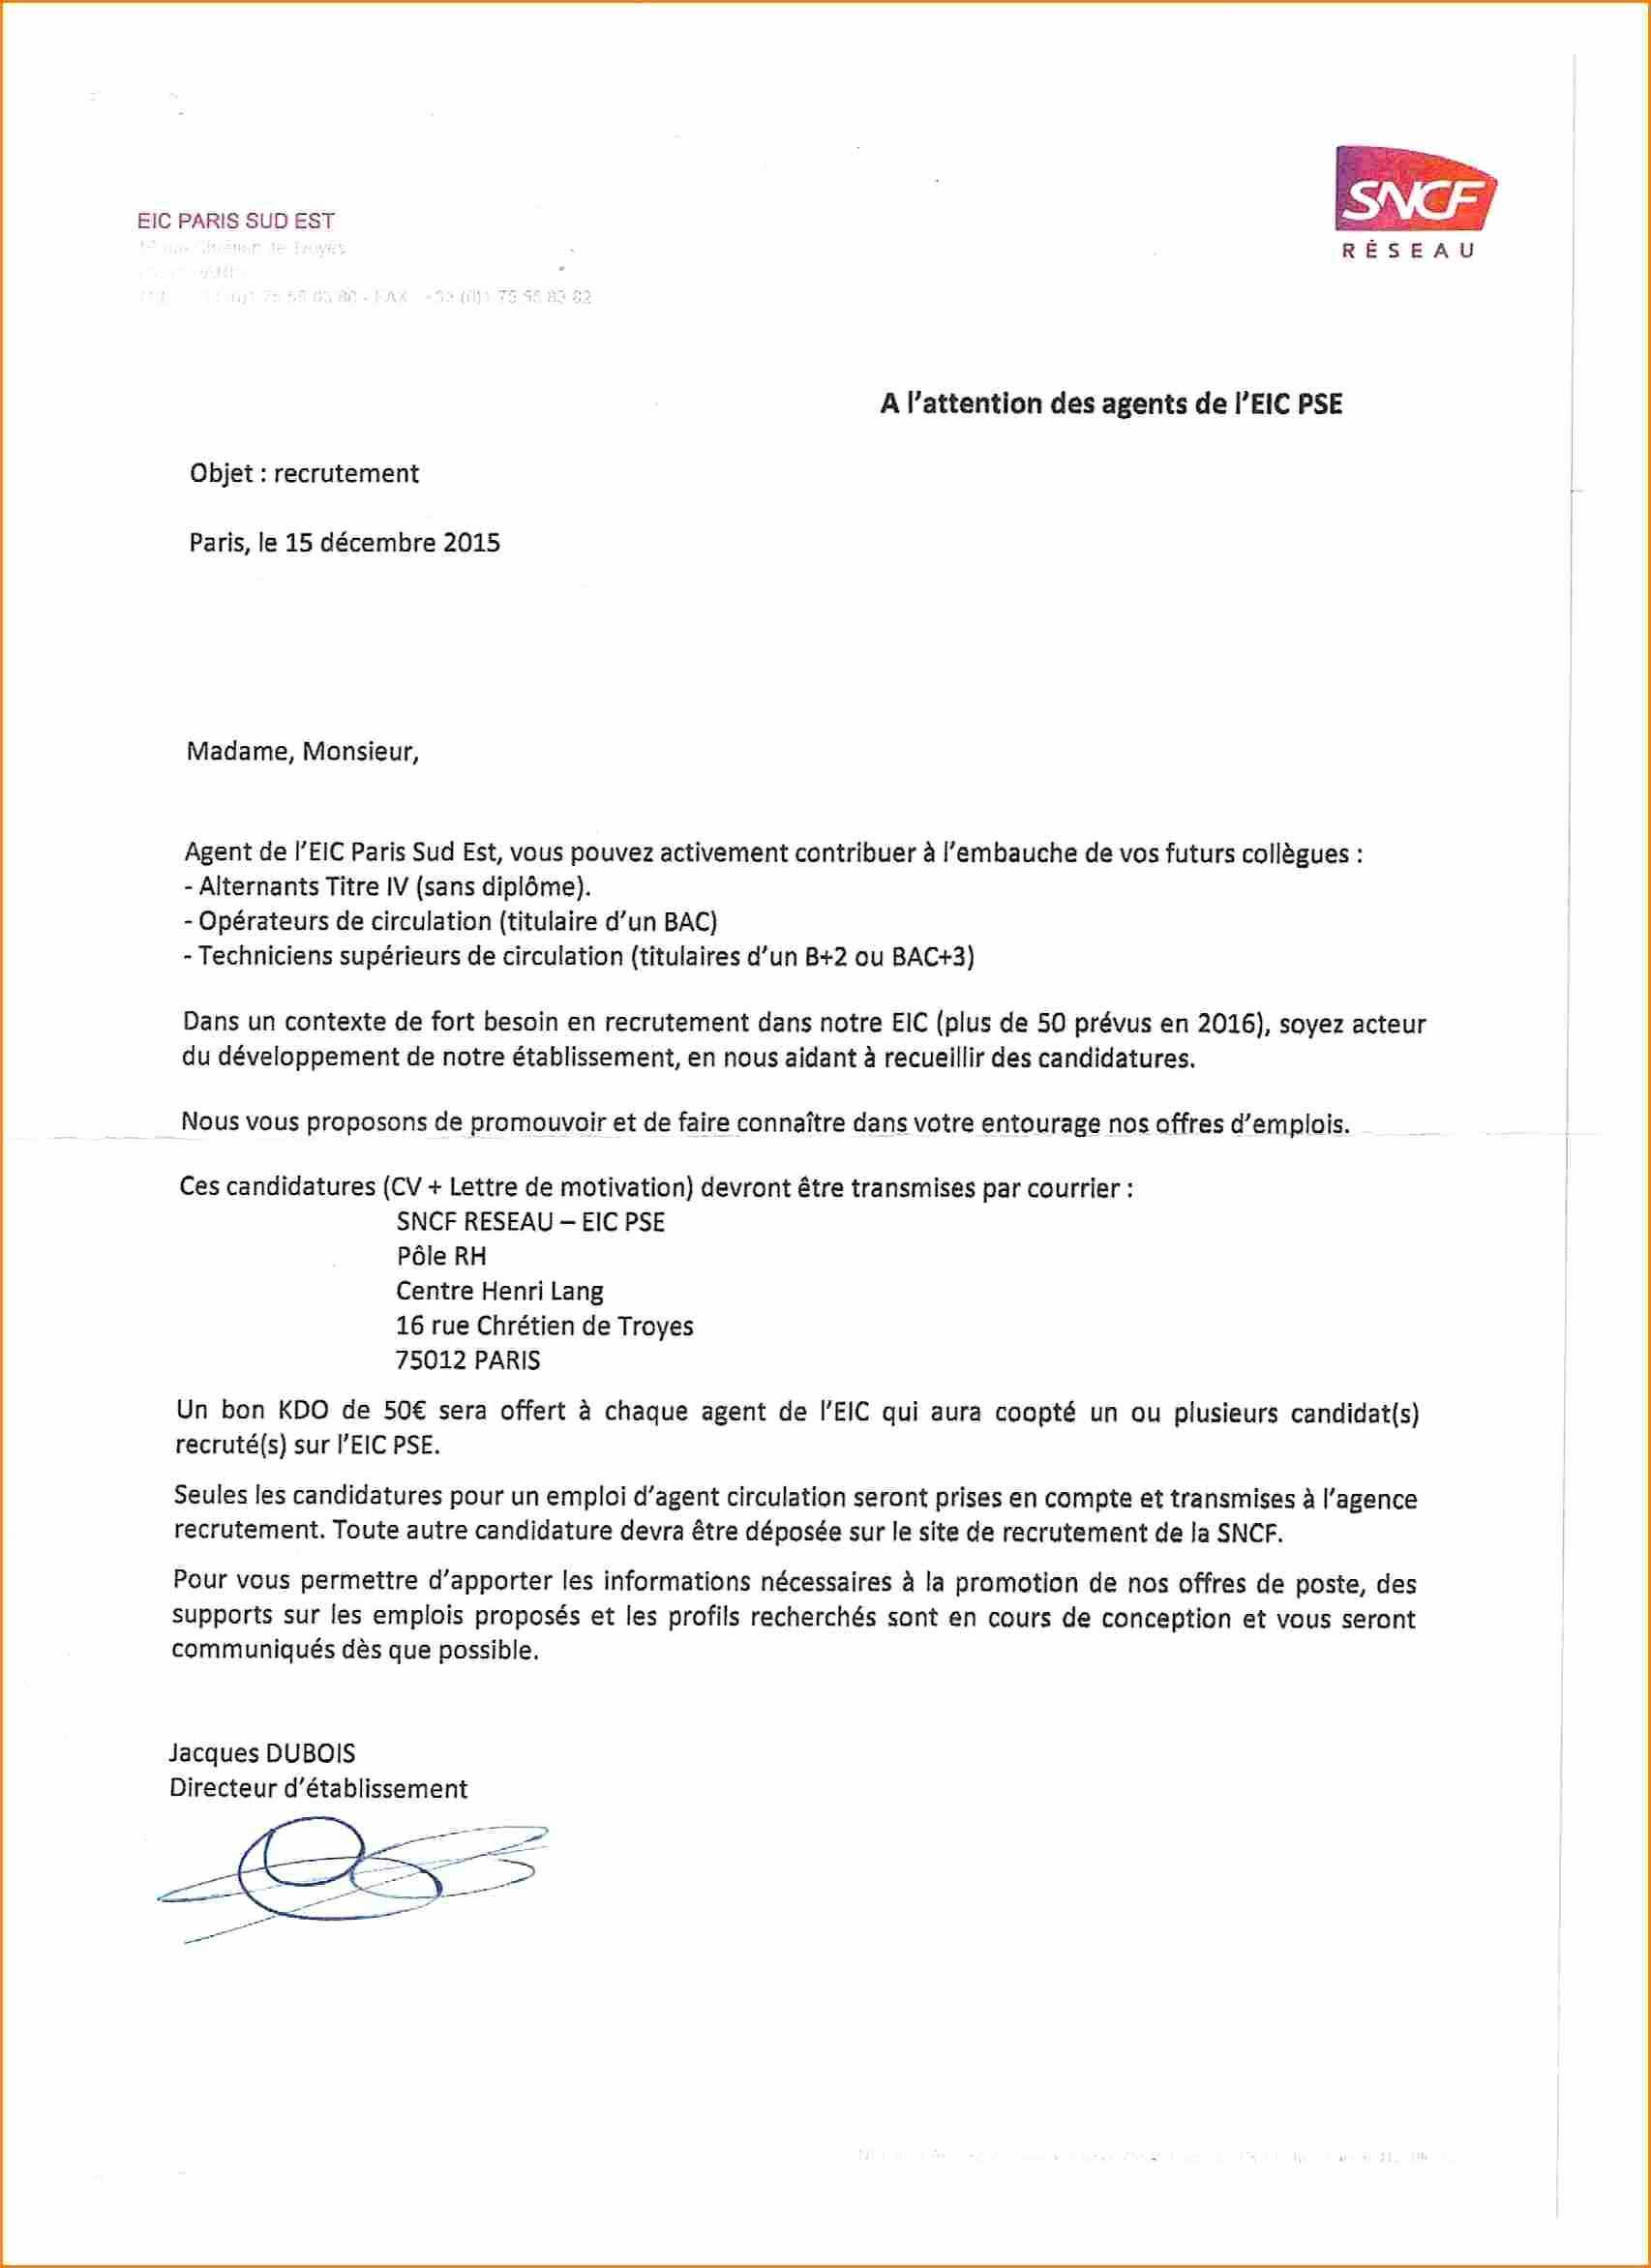 New Lettre De Motivation Grande Distribution Sans Experience